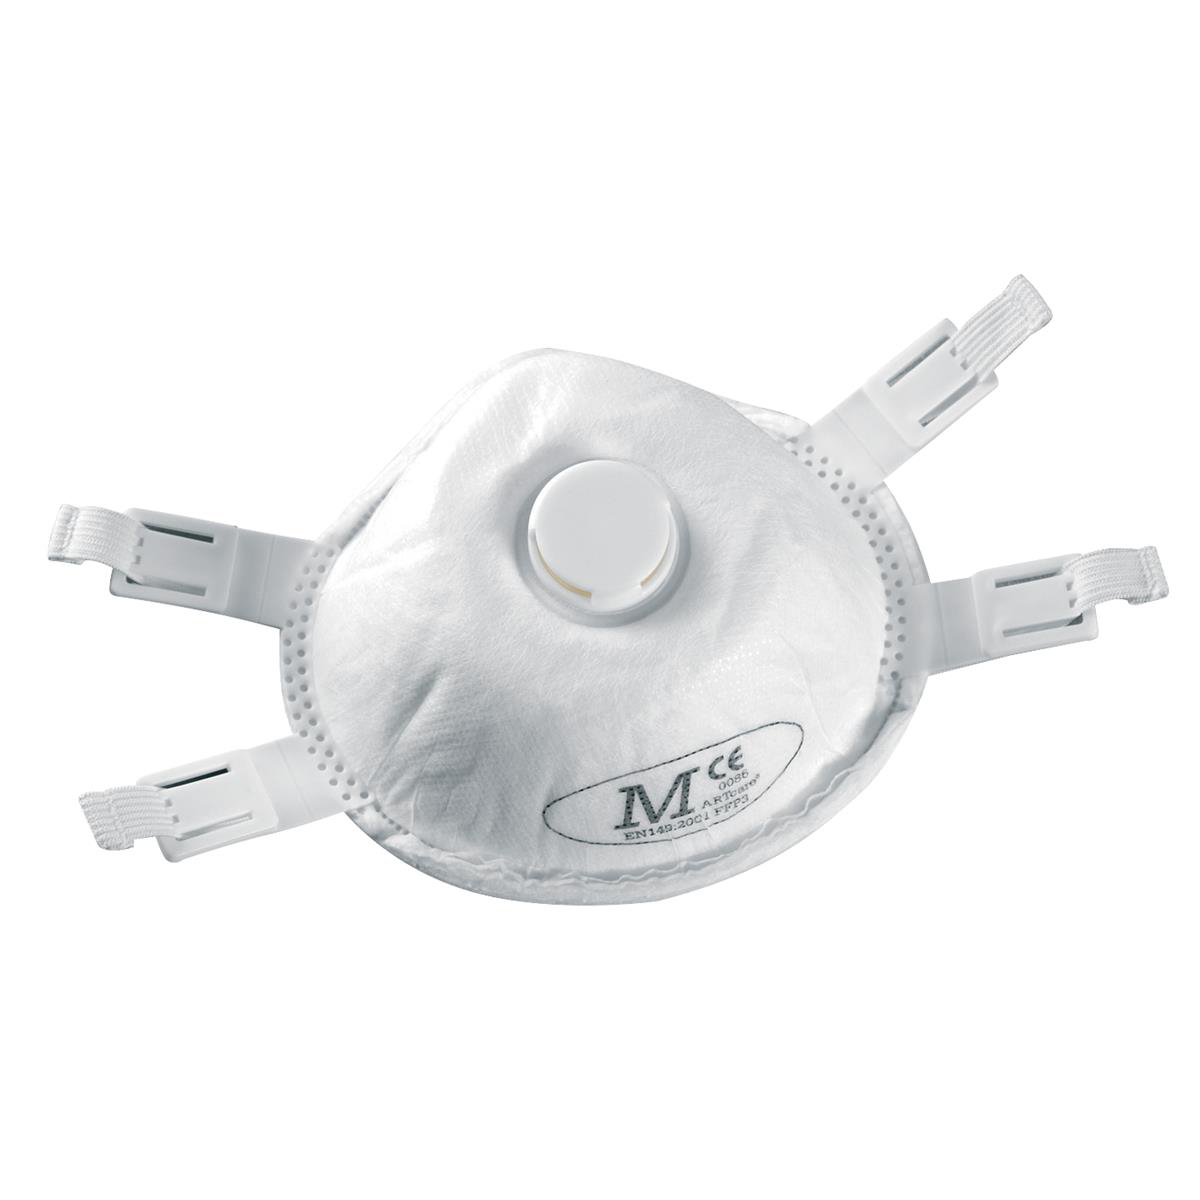 JSP Disposable Mask FFP3 Moulded Valved EN149 Standard Ref BEH130-001-000 [Pack 5]